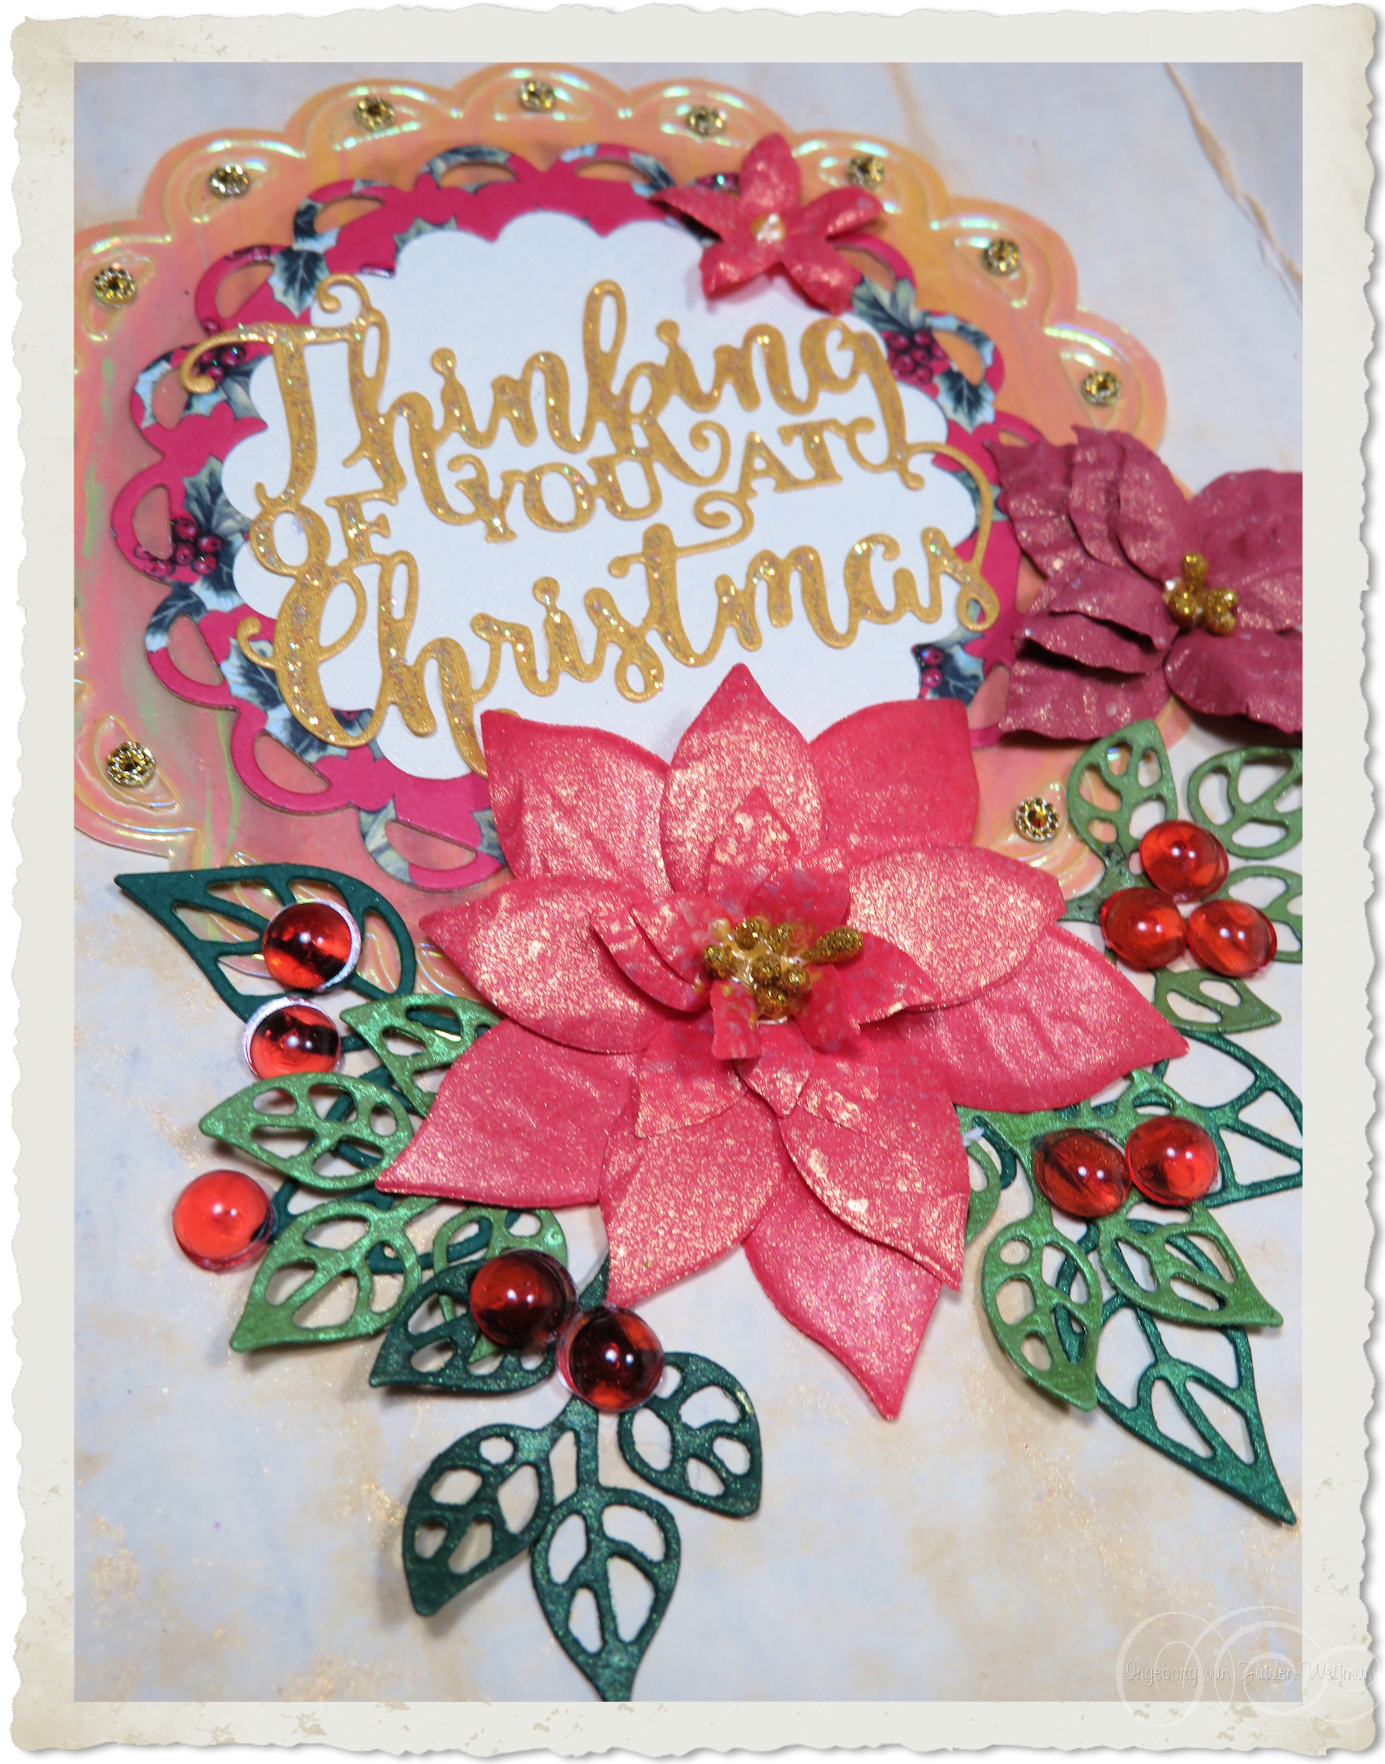 Handmade Christmas wish circle inside card details